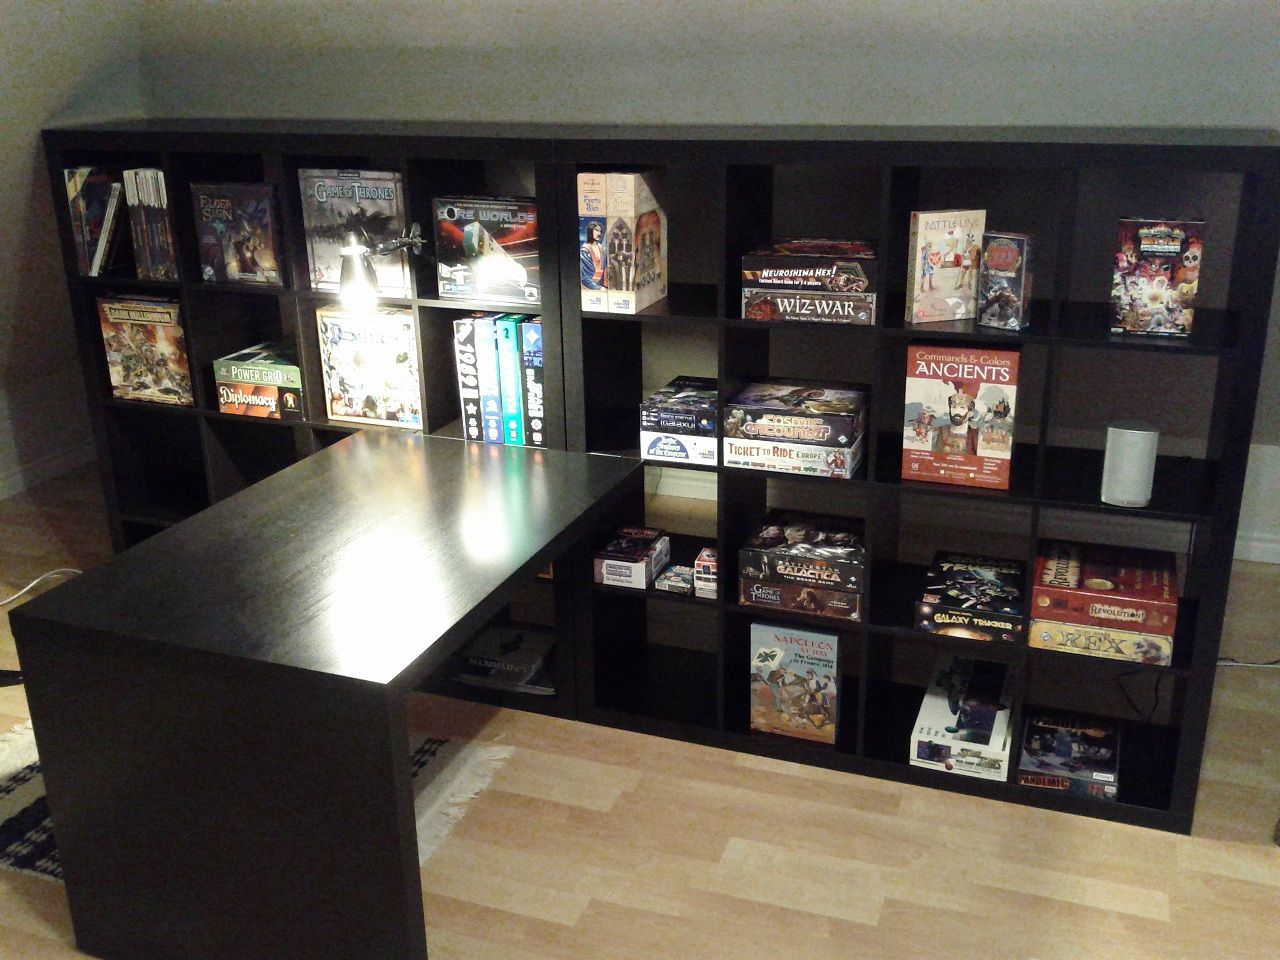 Ikea expedit desk and bookcase cube display - 17 Best Images About Office On Pinterest Ikea Cork Wall